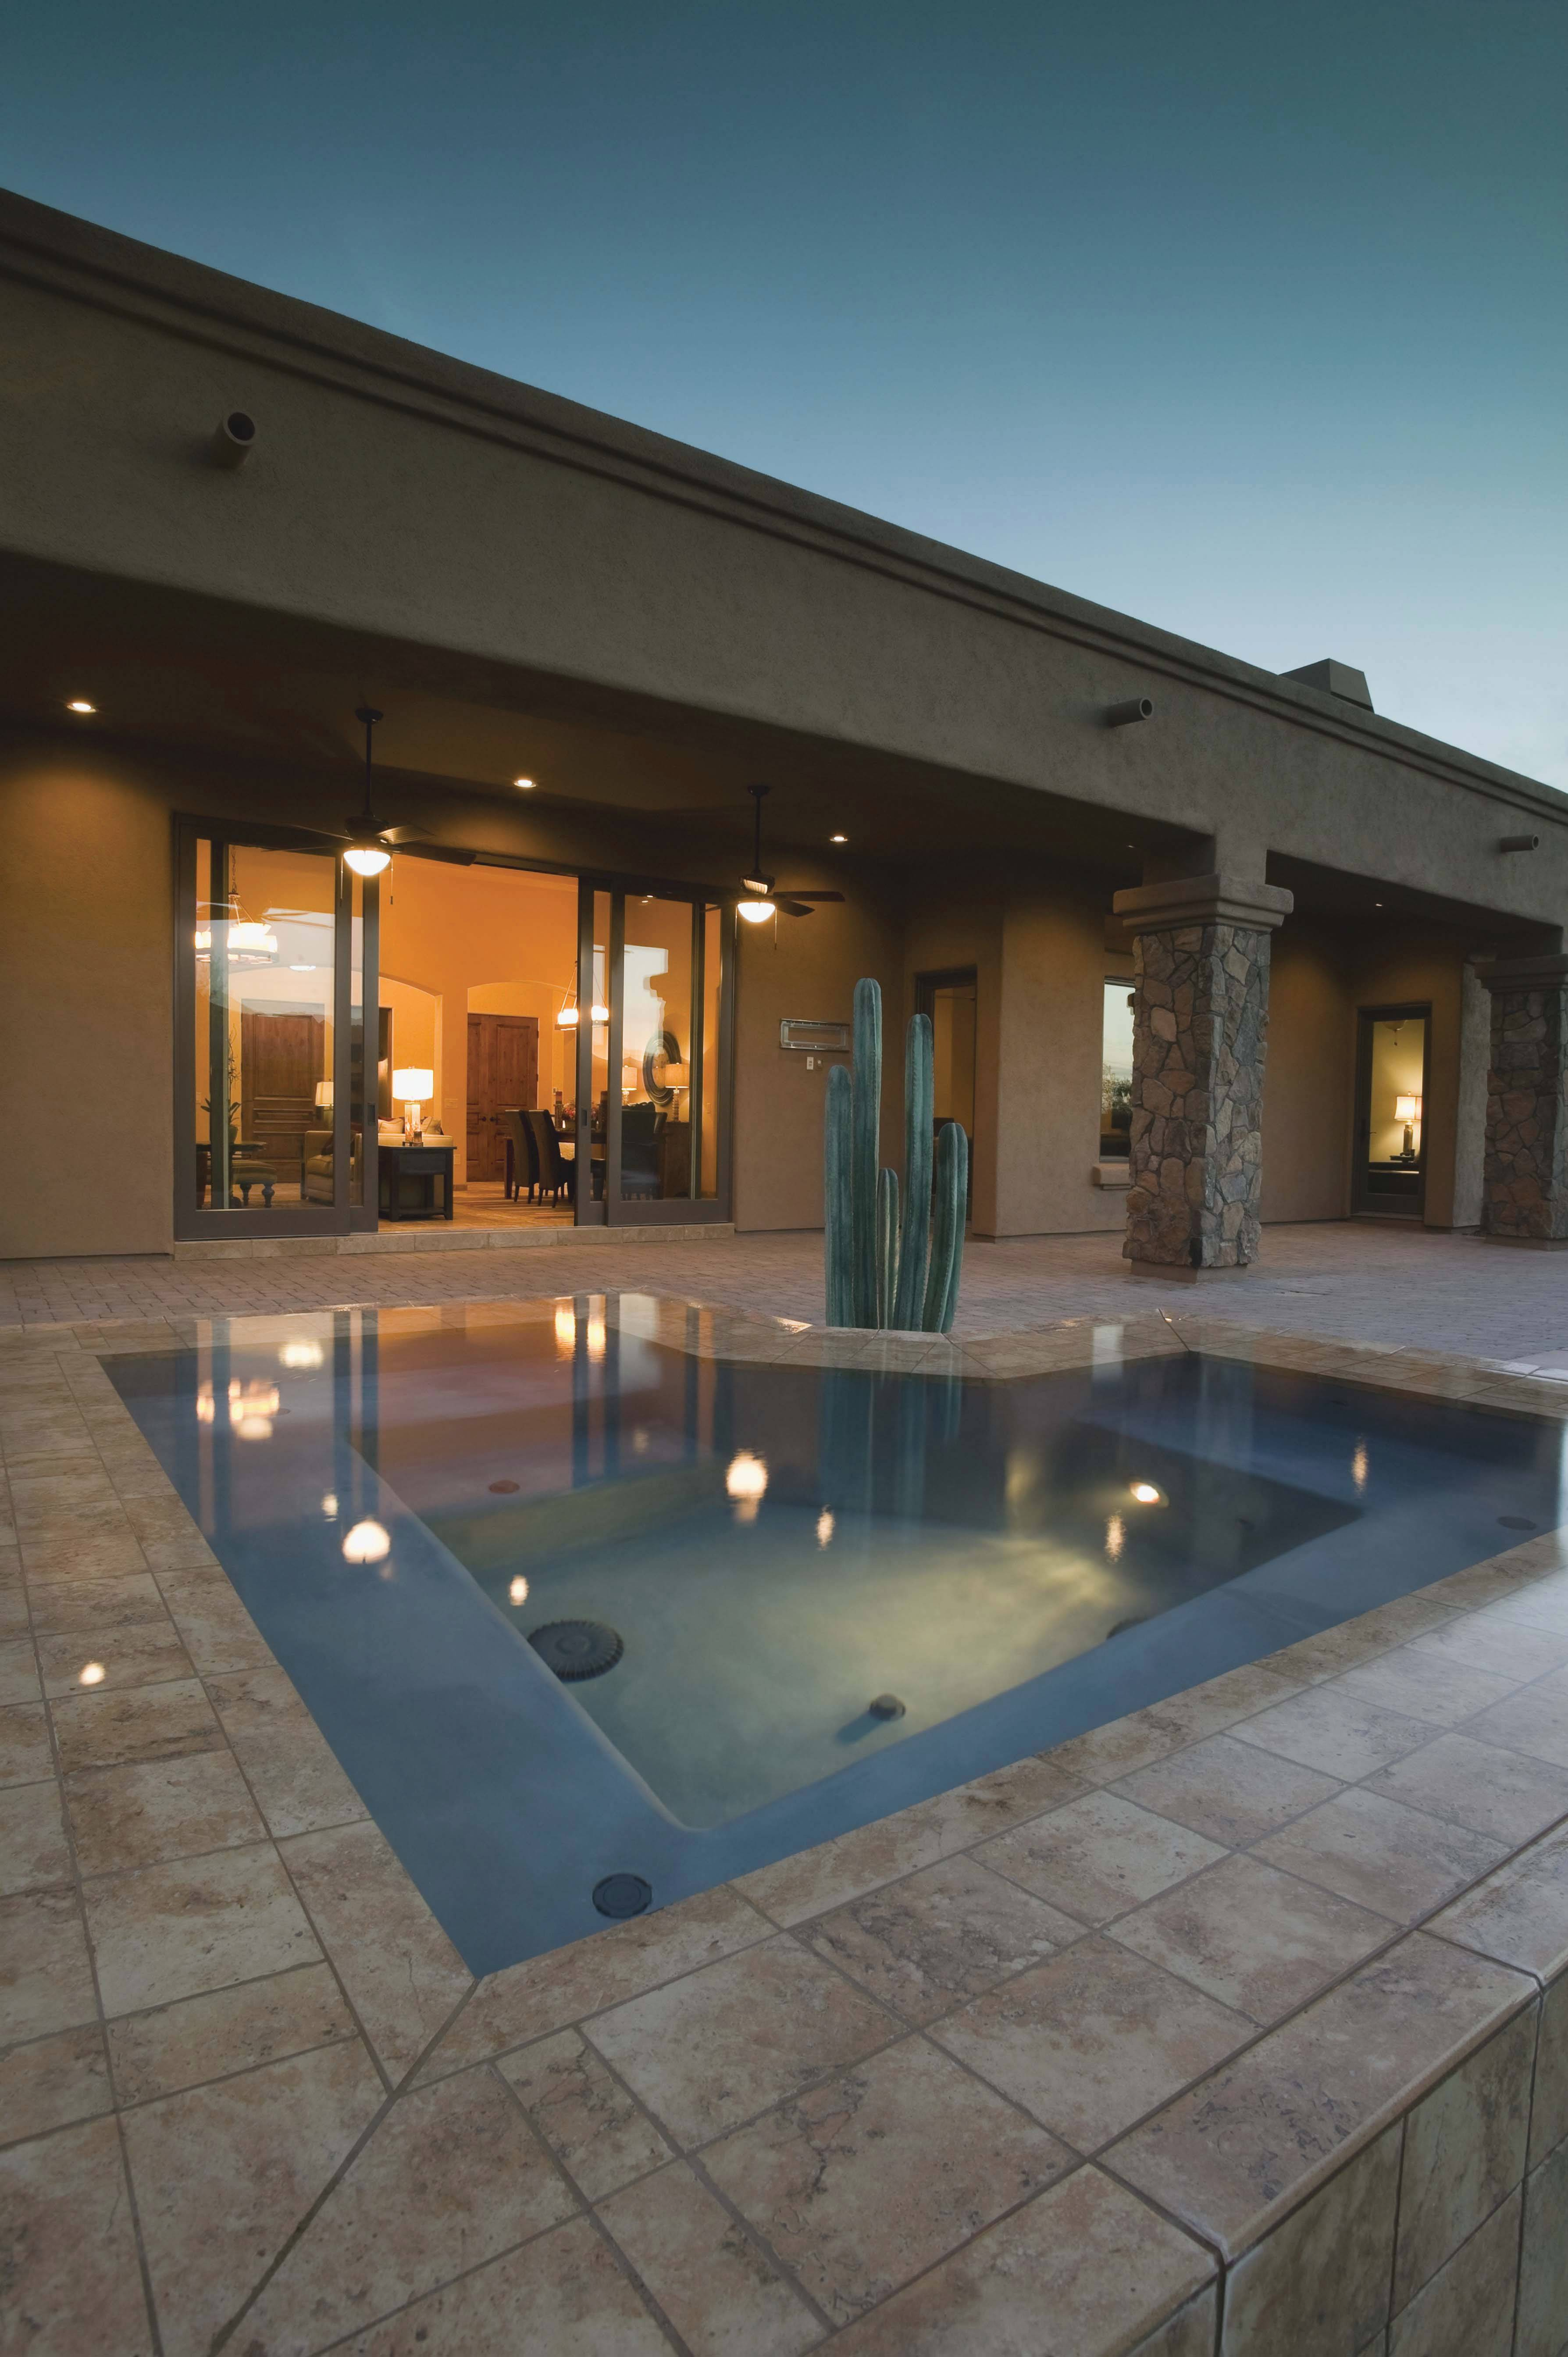 Low Voltage And LED Lighting Are Popular Sources For Ambient Pool Lighting.  Floating And